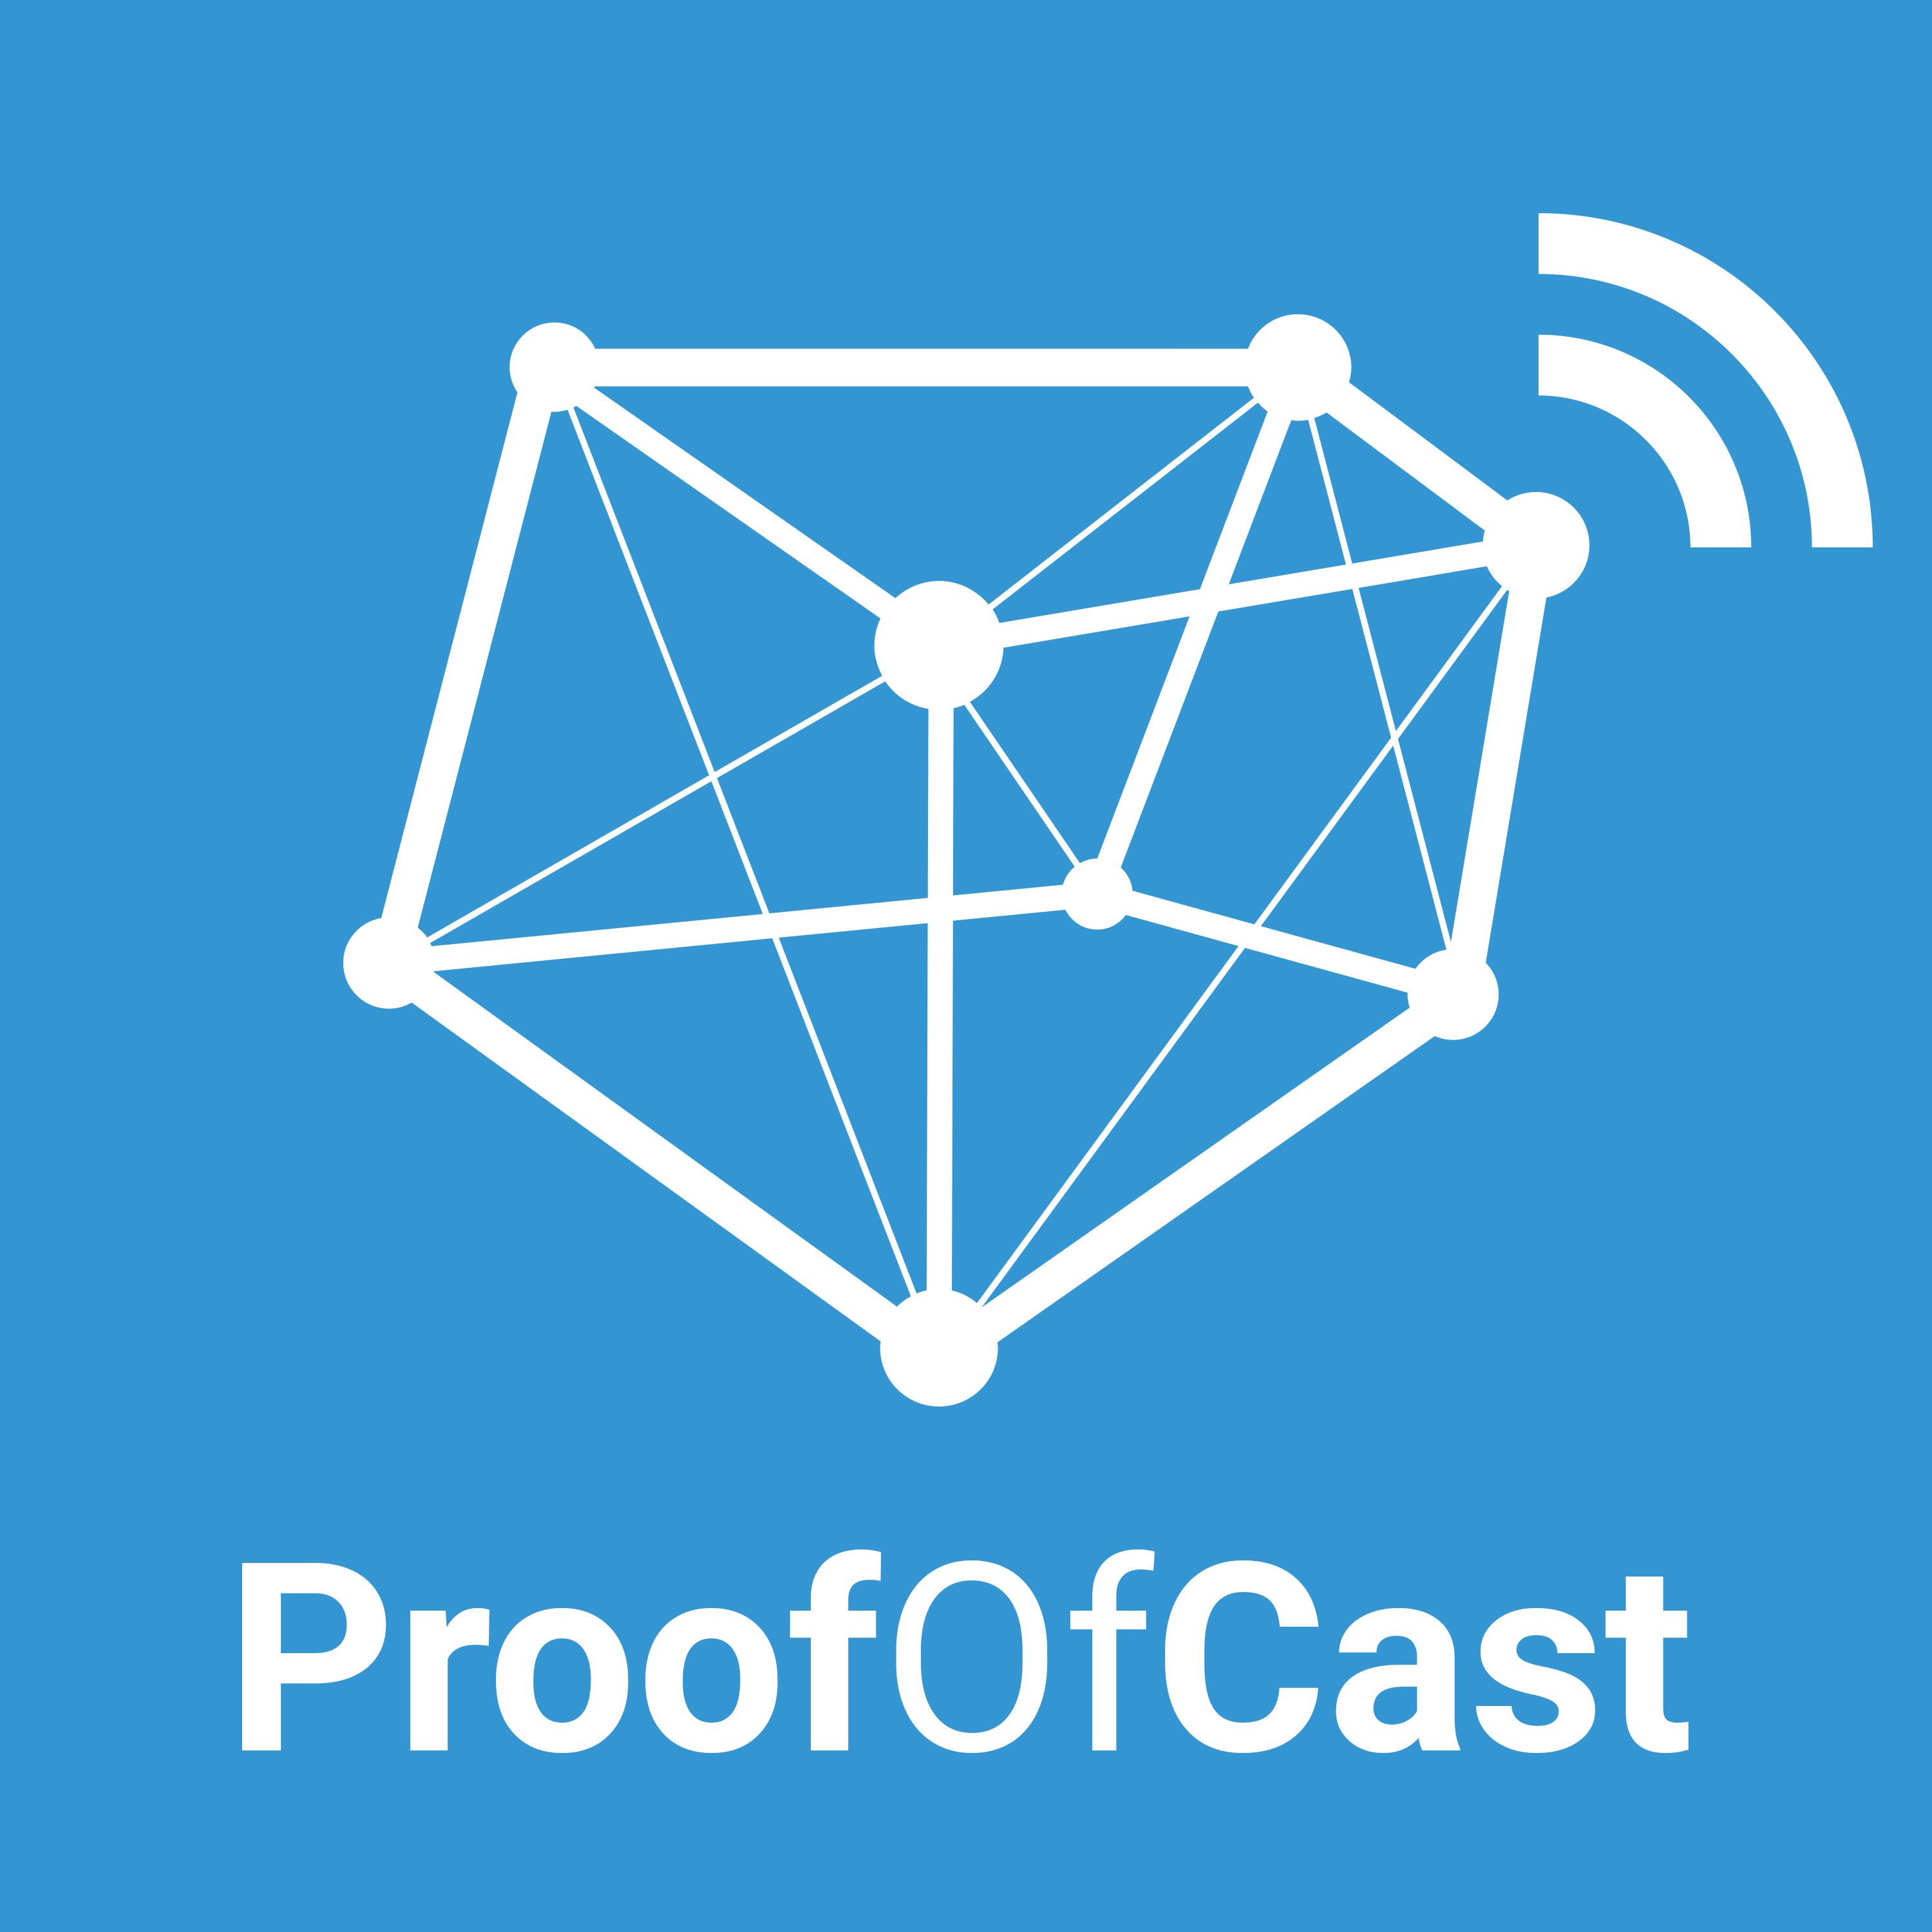 ProofOfCast